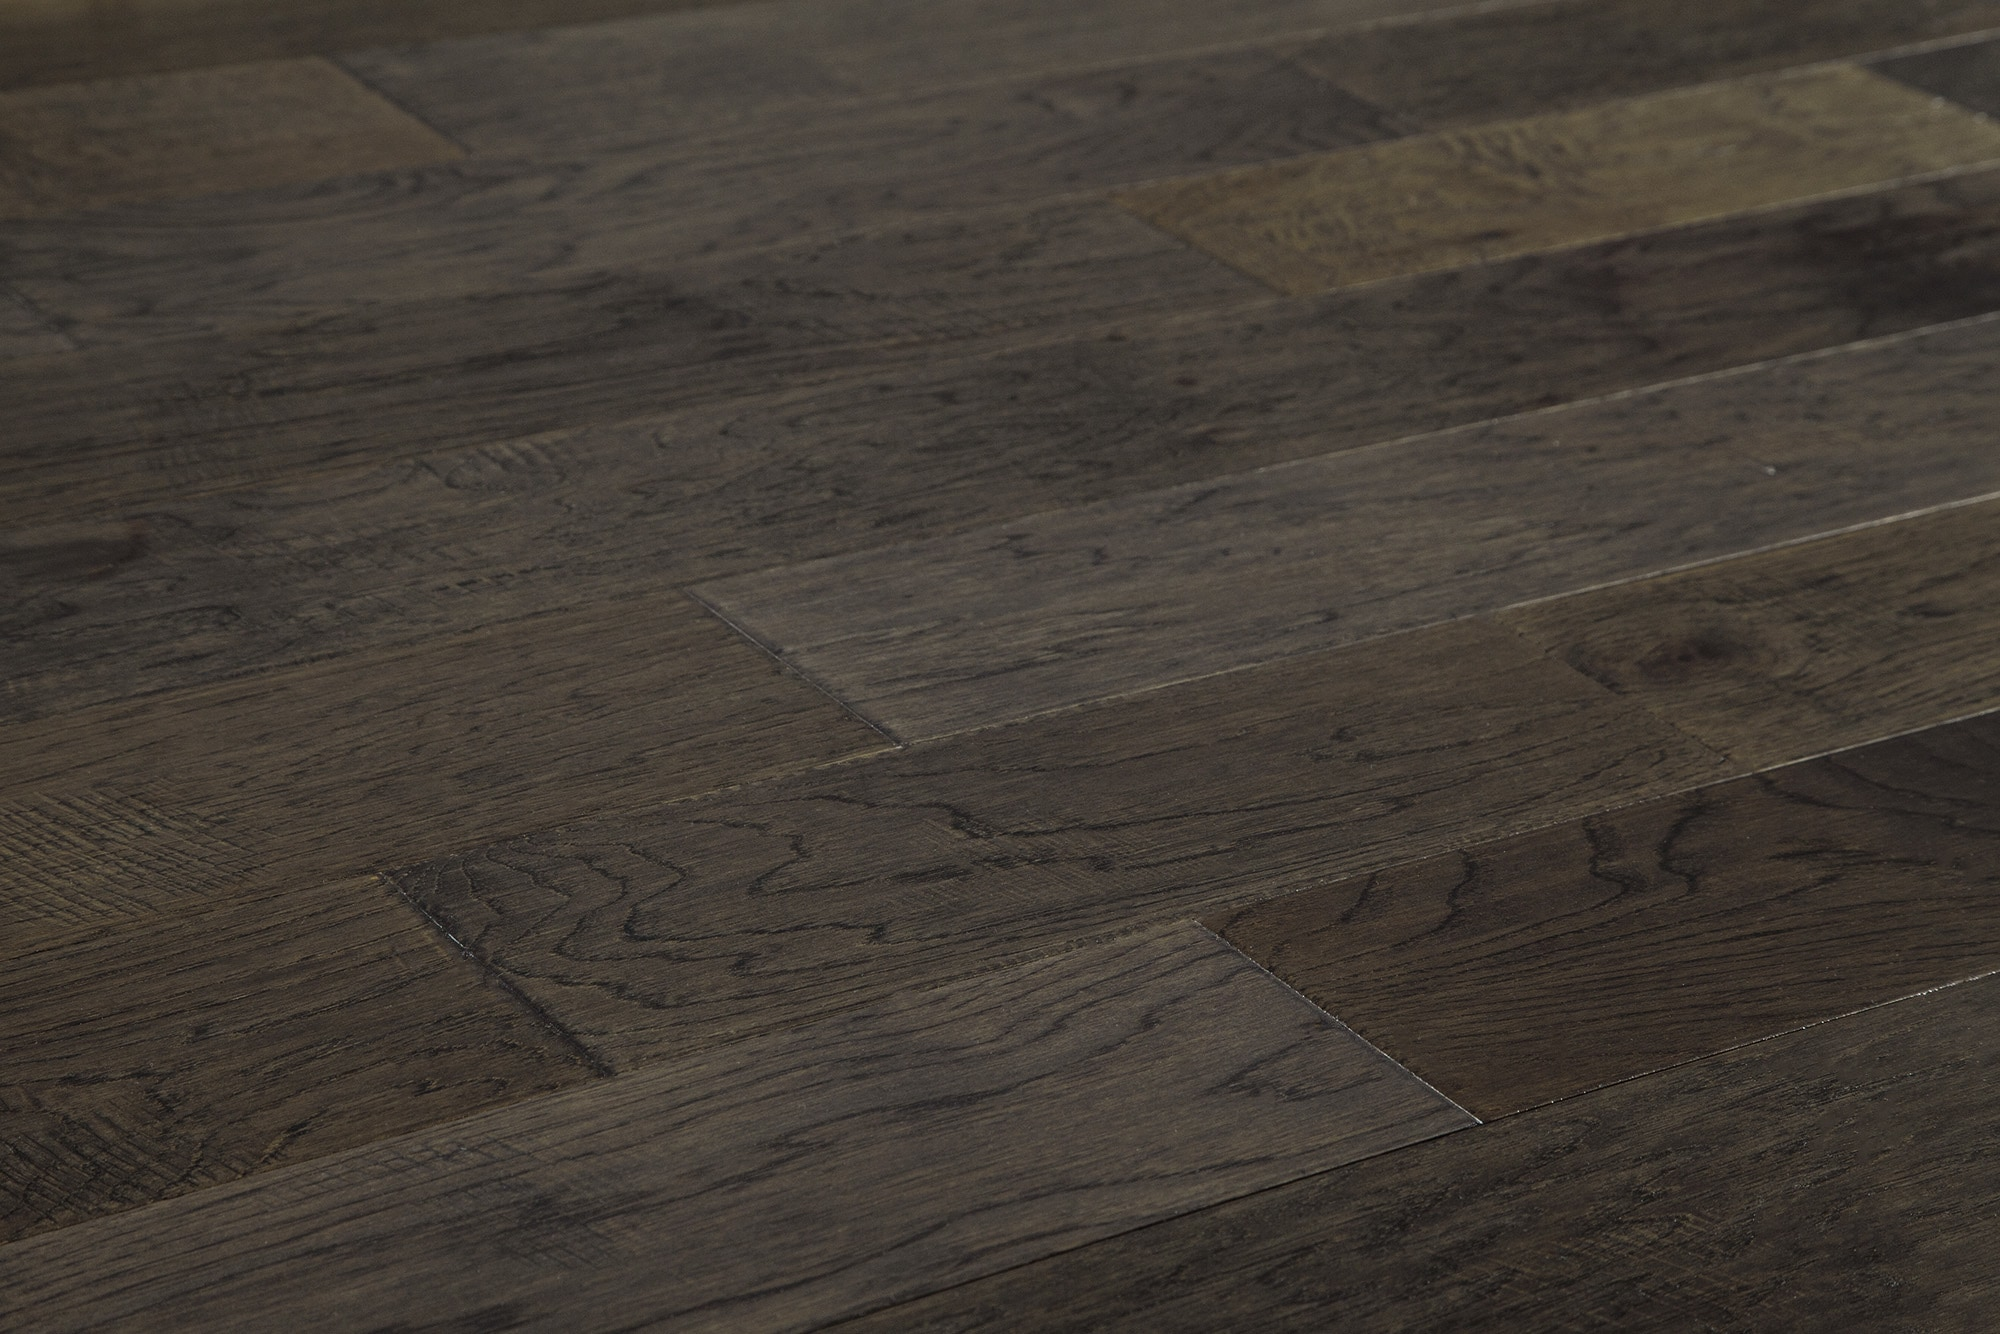 Engineered Hardwood Floor engineered hardwood flooring 2 Engineered Hardwood Planet Hickory Handscraped Collection Saturn Hick